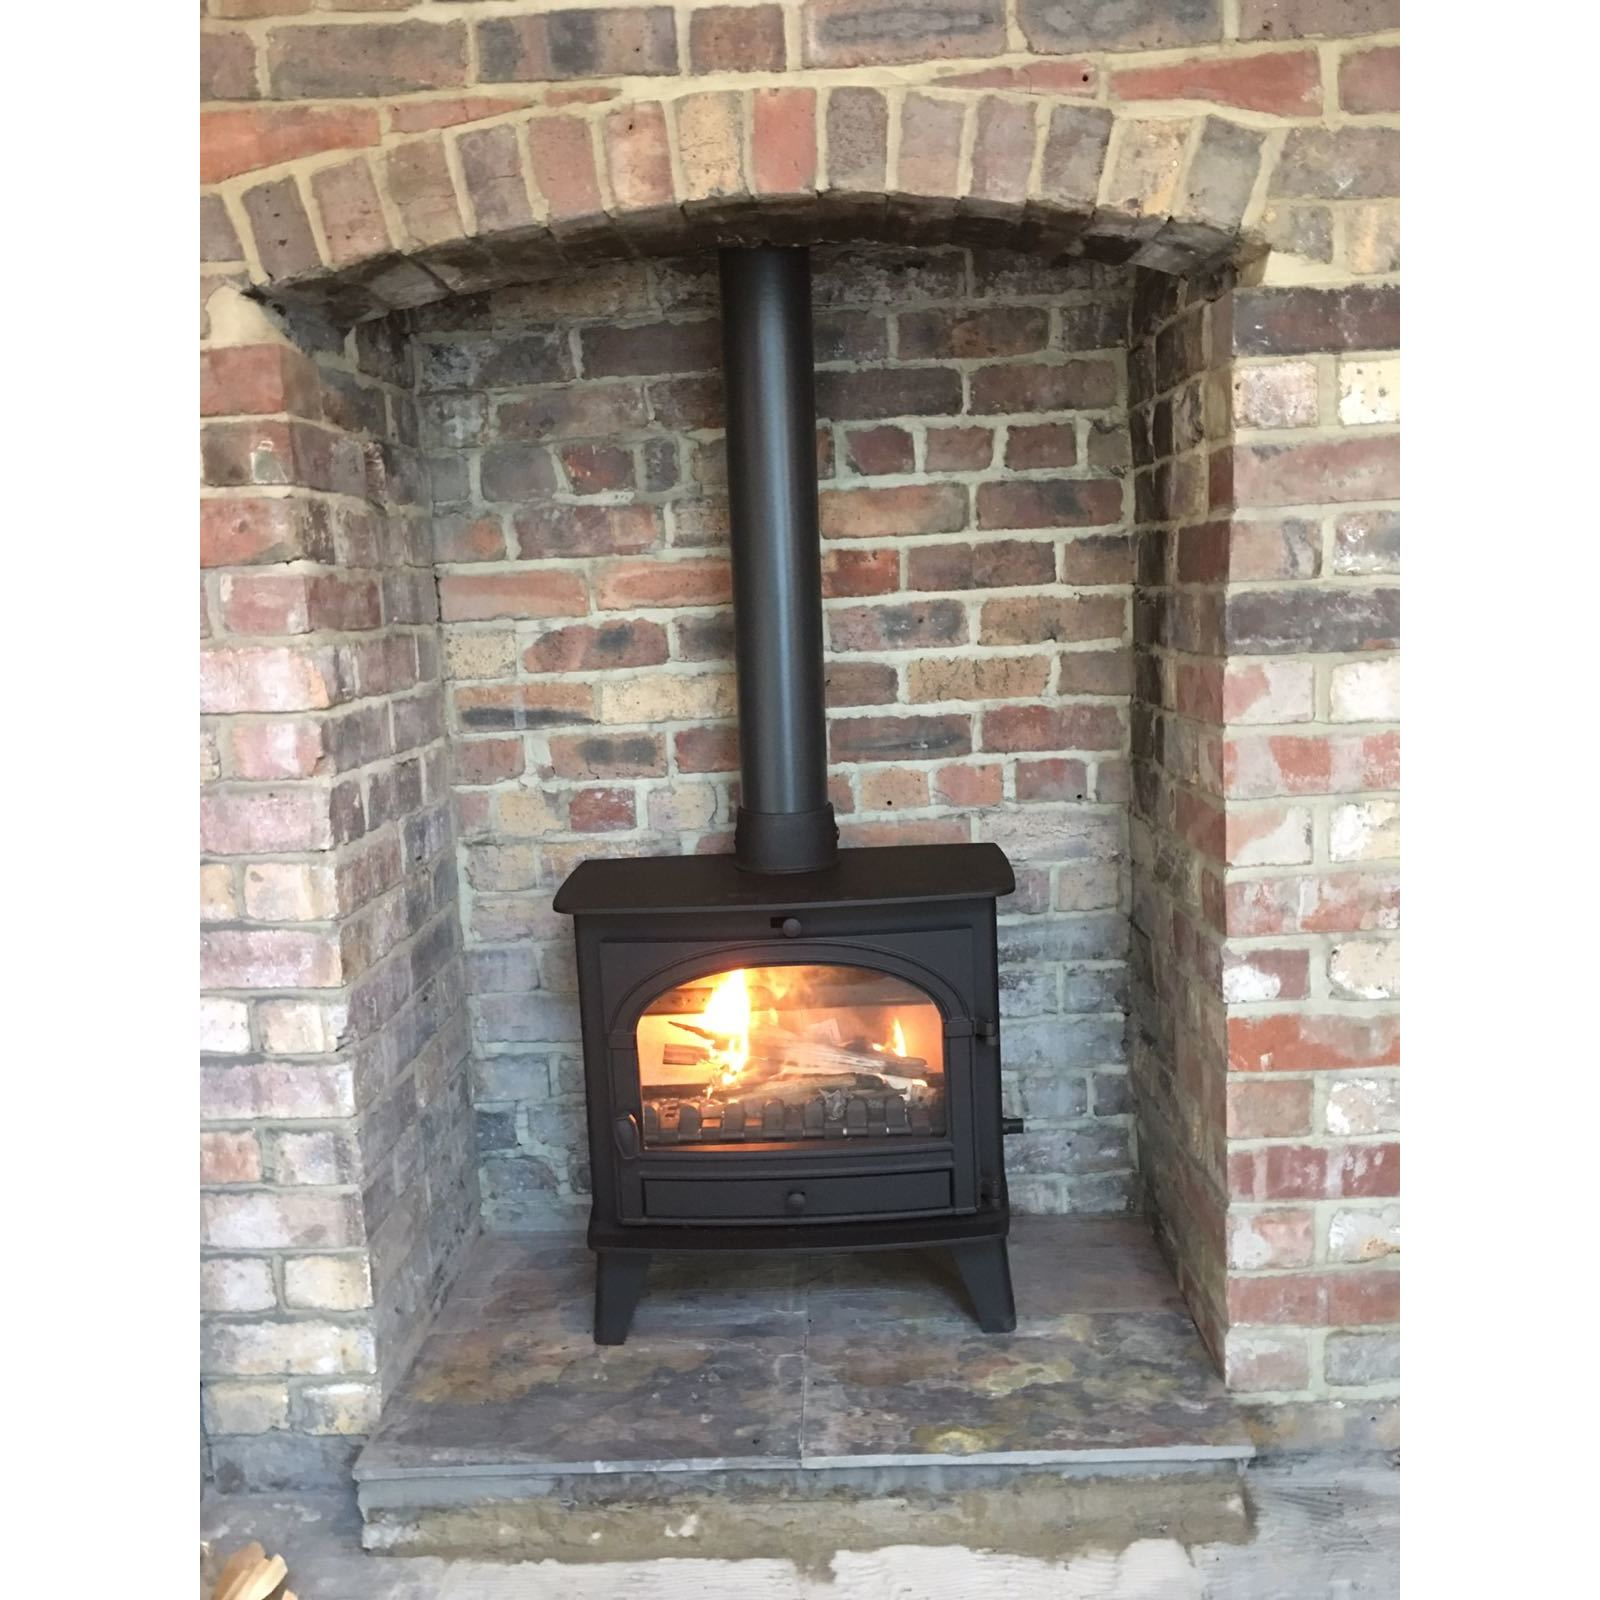 N D S Woodburning Stove & Fireplace Services (The Chimney Man) Hinckley 07514 698379